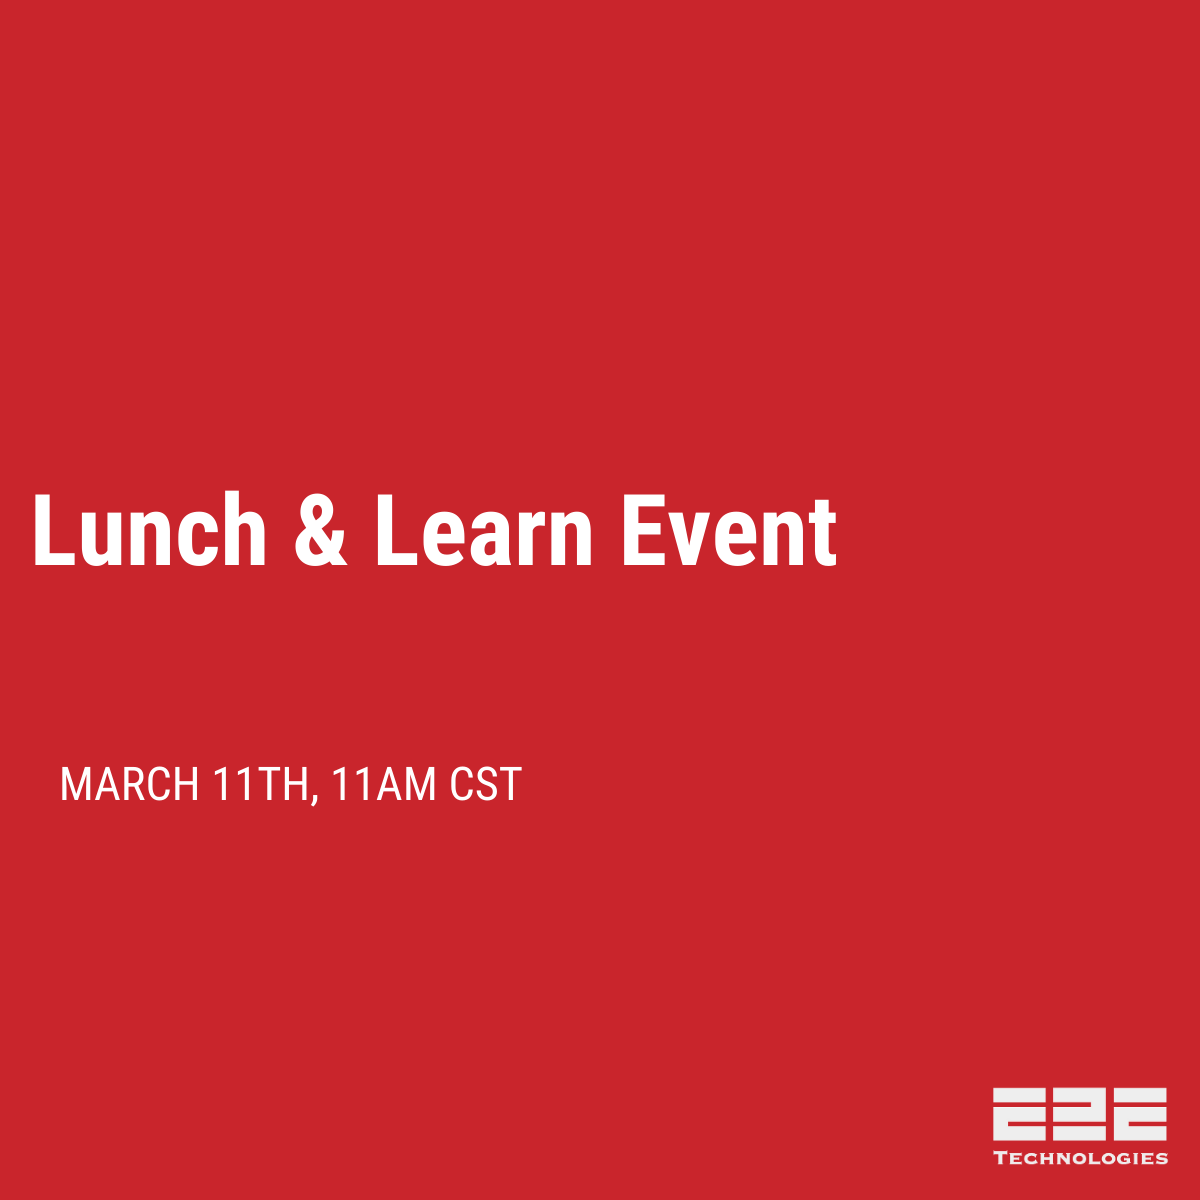 Microwave Backhaul Lunch & Learn